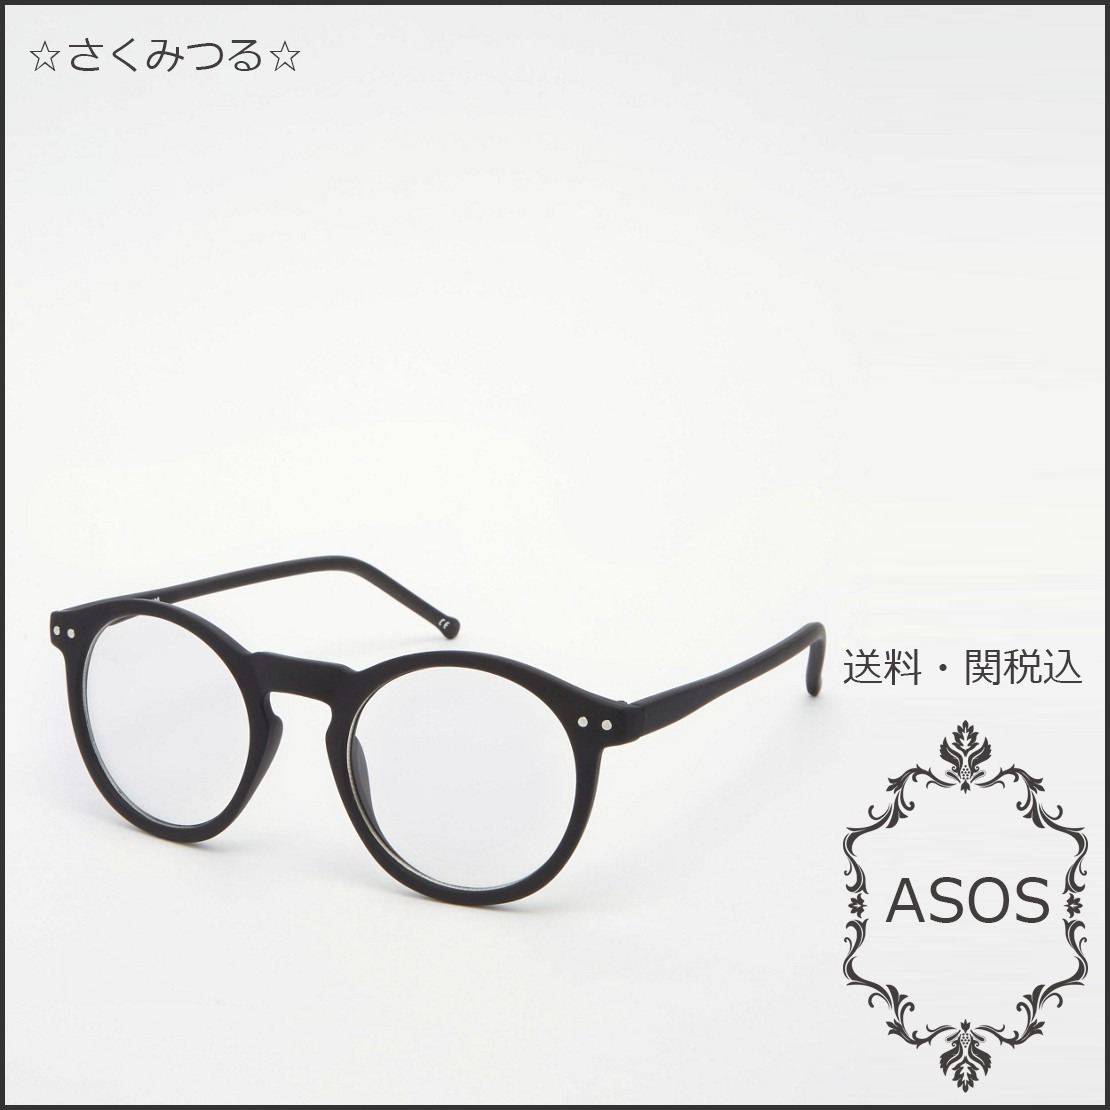 asos clubmaster glasses with clear lens city of kenmore washington Ray-Ban RB4033 asos clubmaster glasses with clear lens